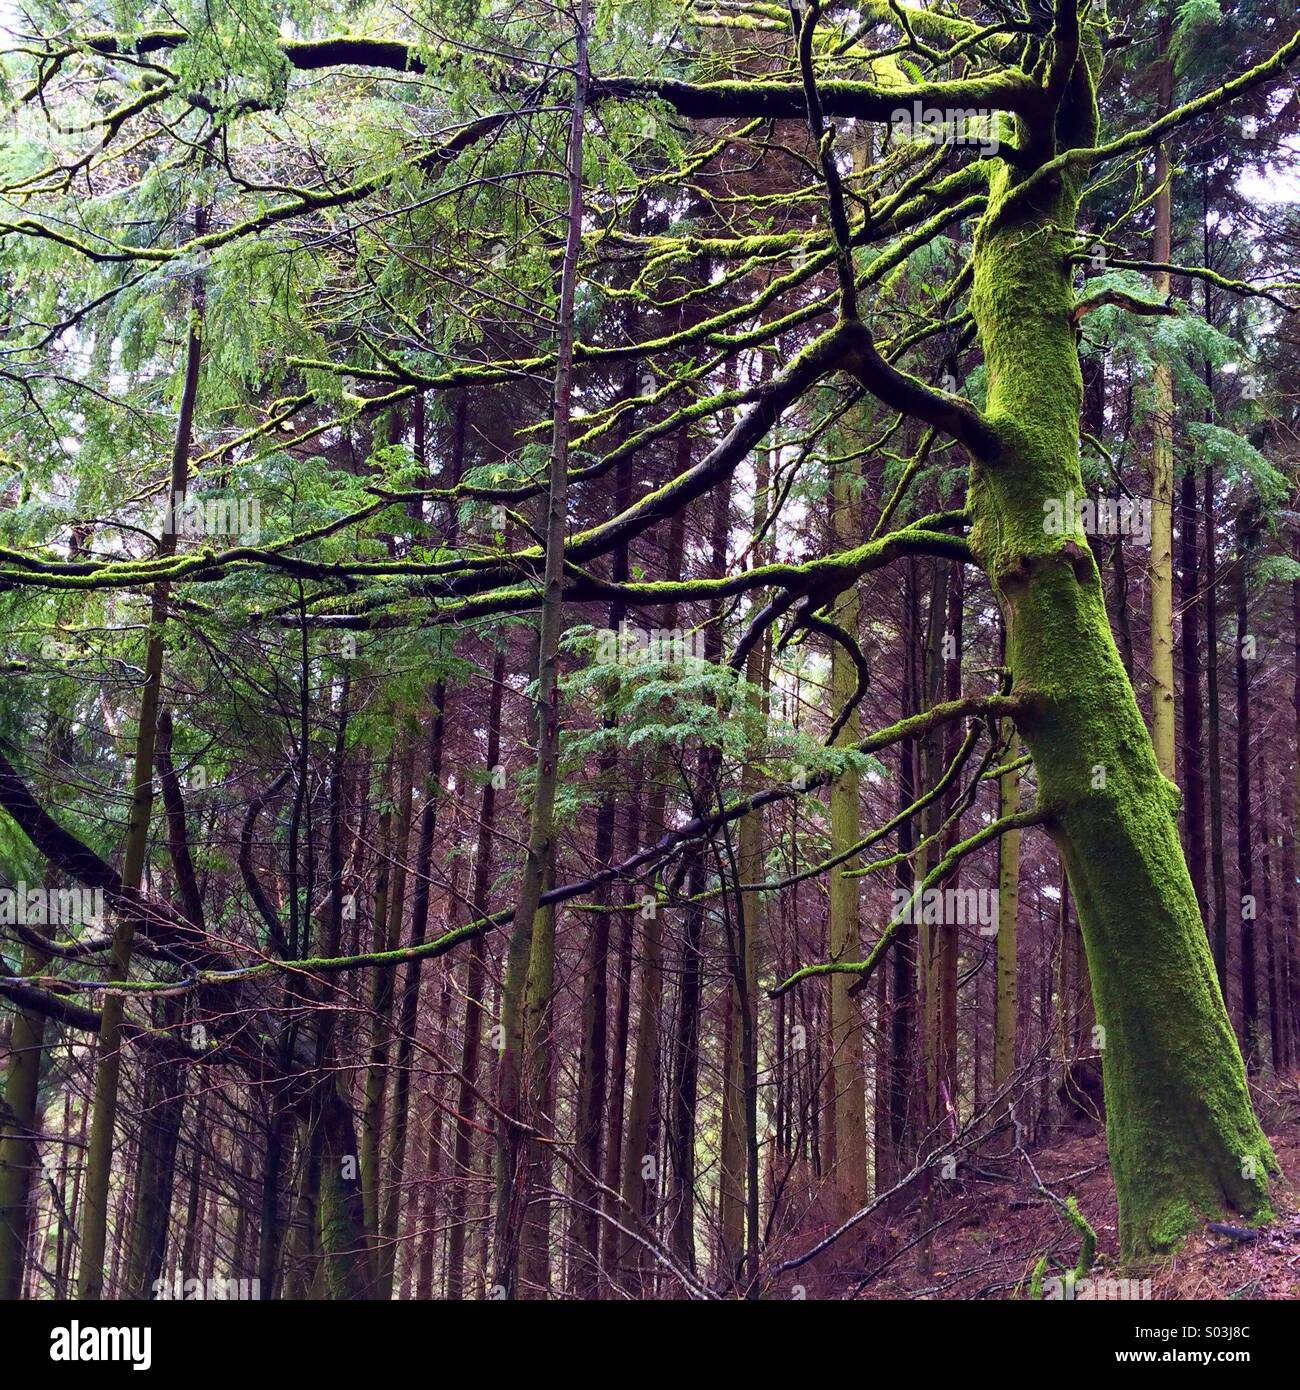 Light in a forest after rain, showing a moss covered tree in vivid green. - Stock Image